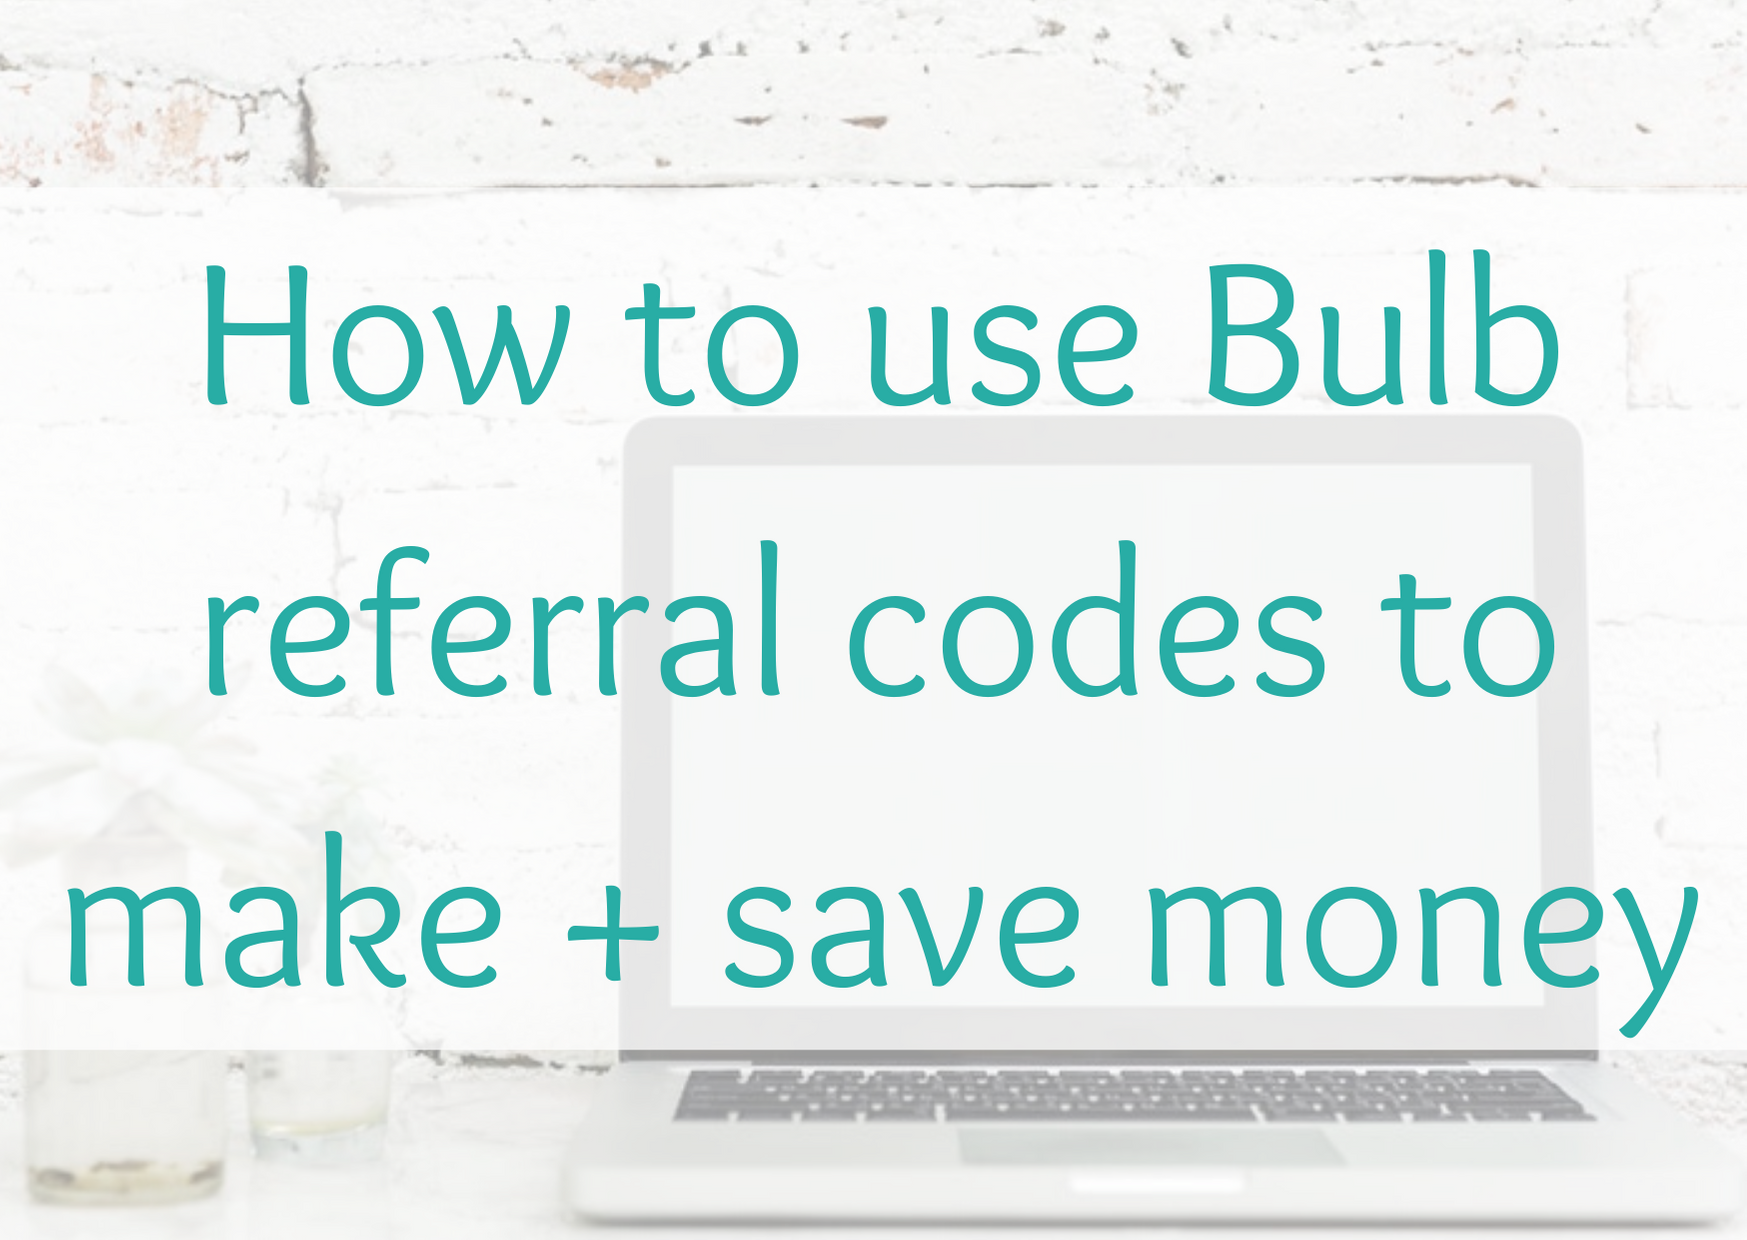 How to use Bulb referral codes to make + save money